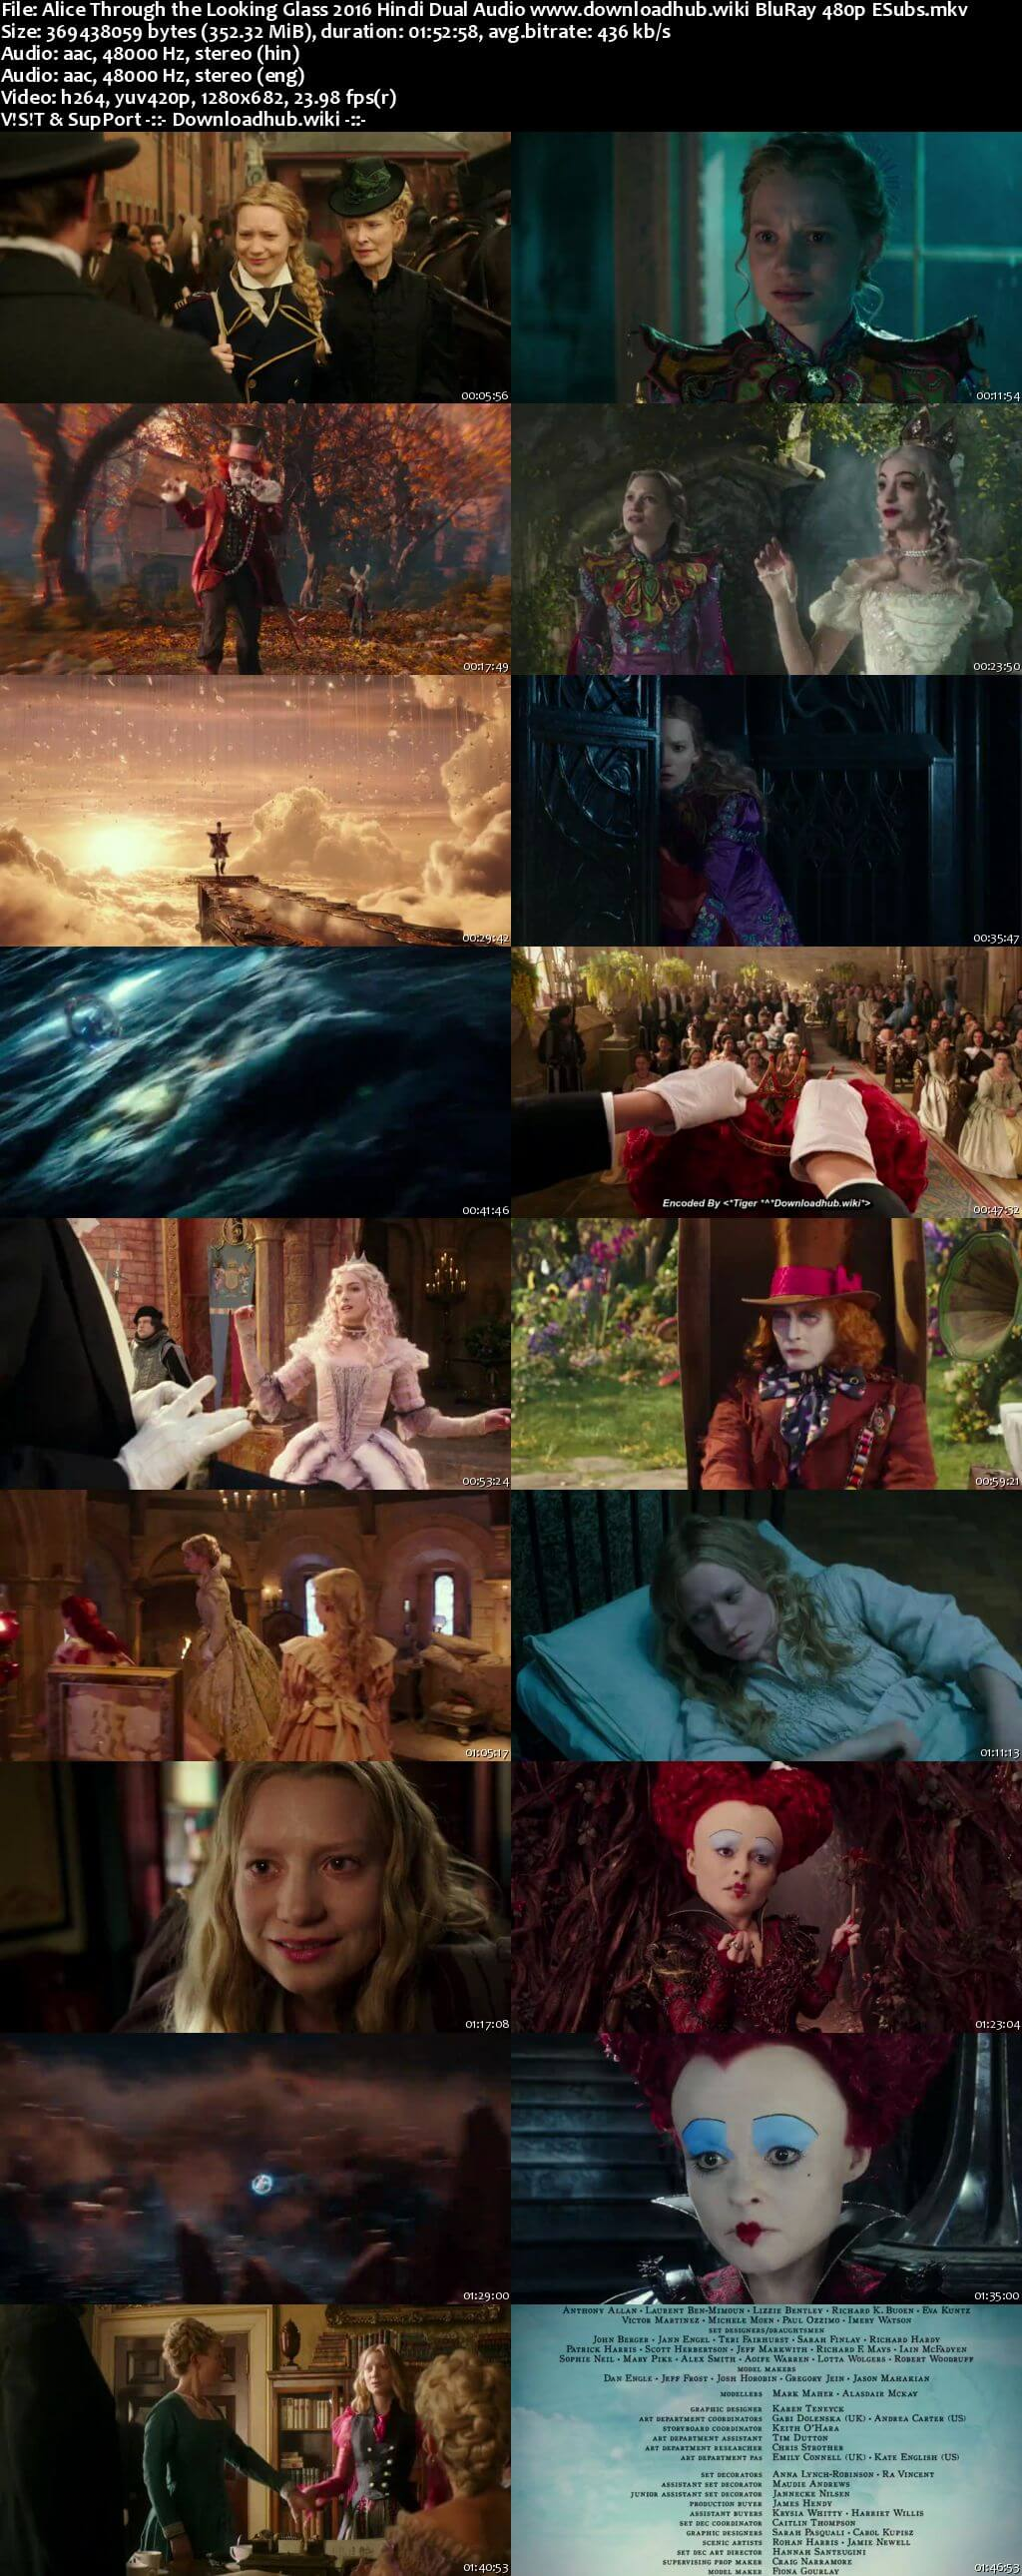 Alice Through the Looking Glass 2016 Hindi Dual Audio 350MB BluRay 480p ESubs